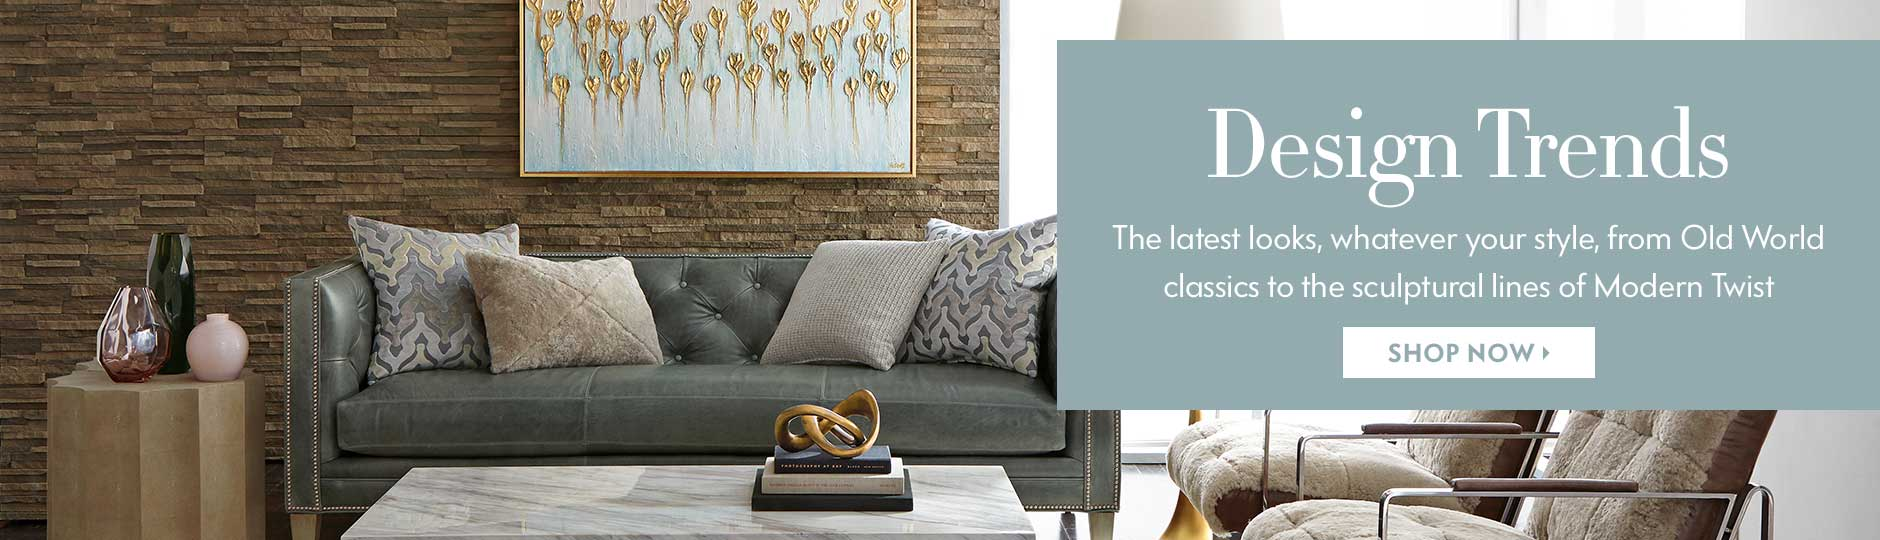 Design Trends - The latest looks, whatever your style, from Old World classics to the sculptural lines of Modern Twist